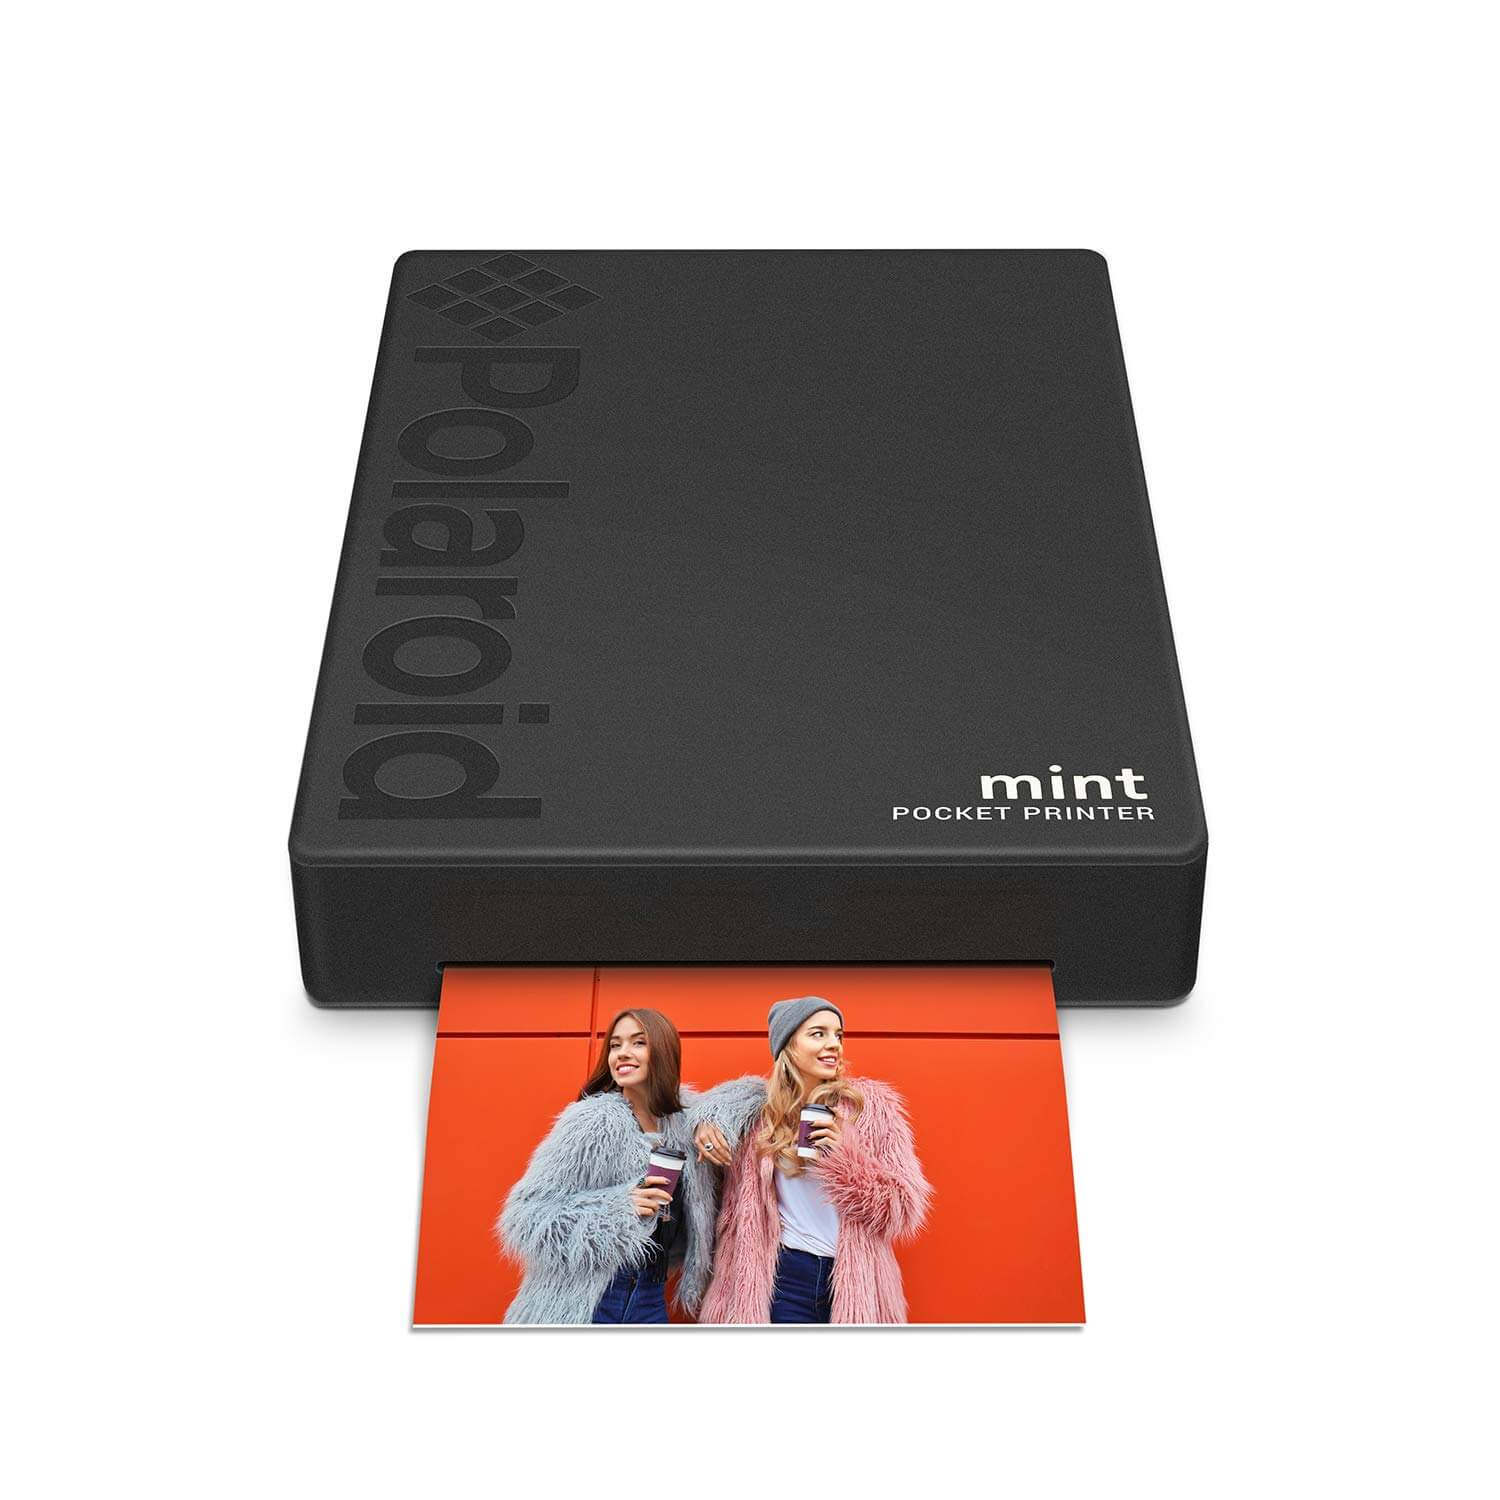 Polaroid Mint Pocket Printer Zink Zero Ink Technology with Built-In Bluetooth for Android & iOS Devices (black)